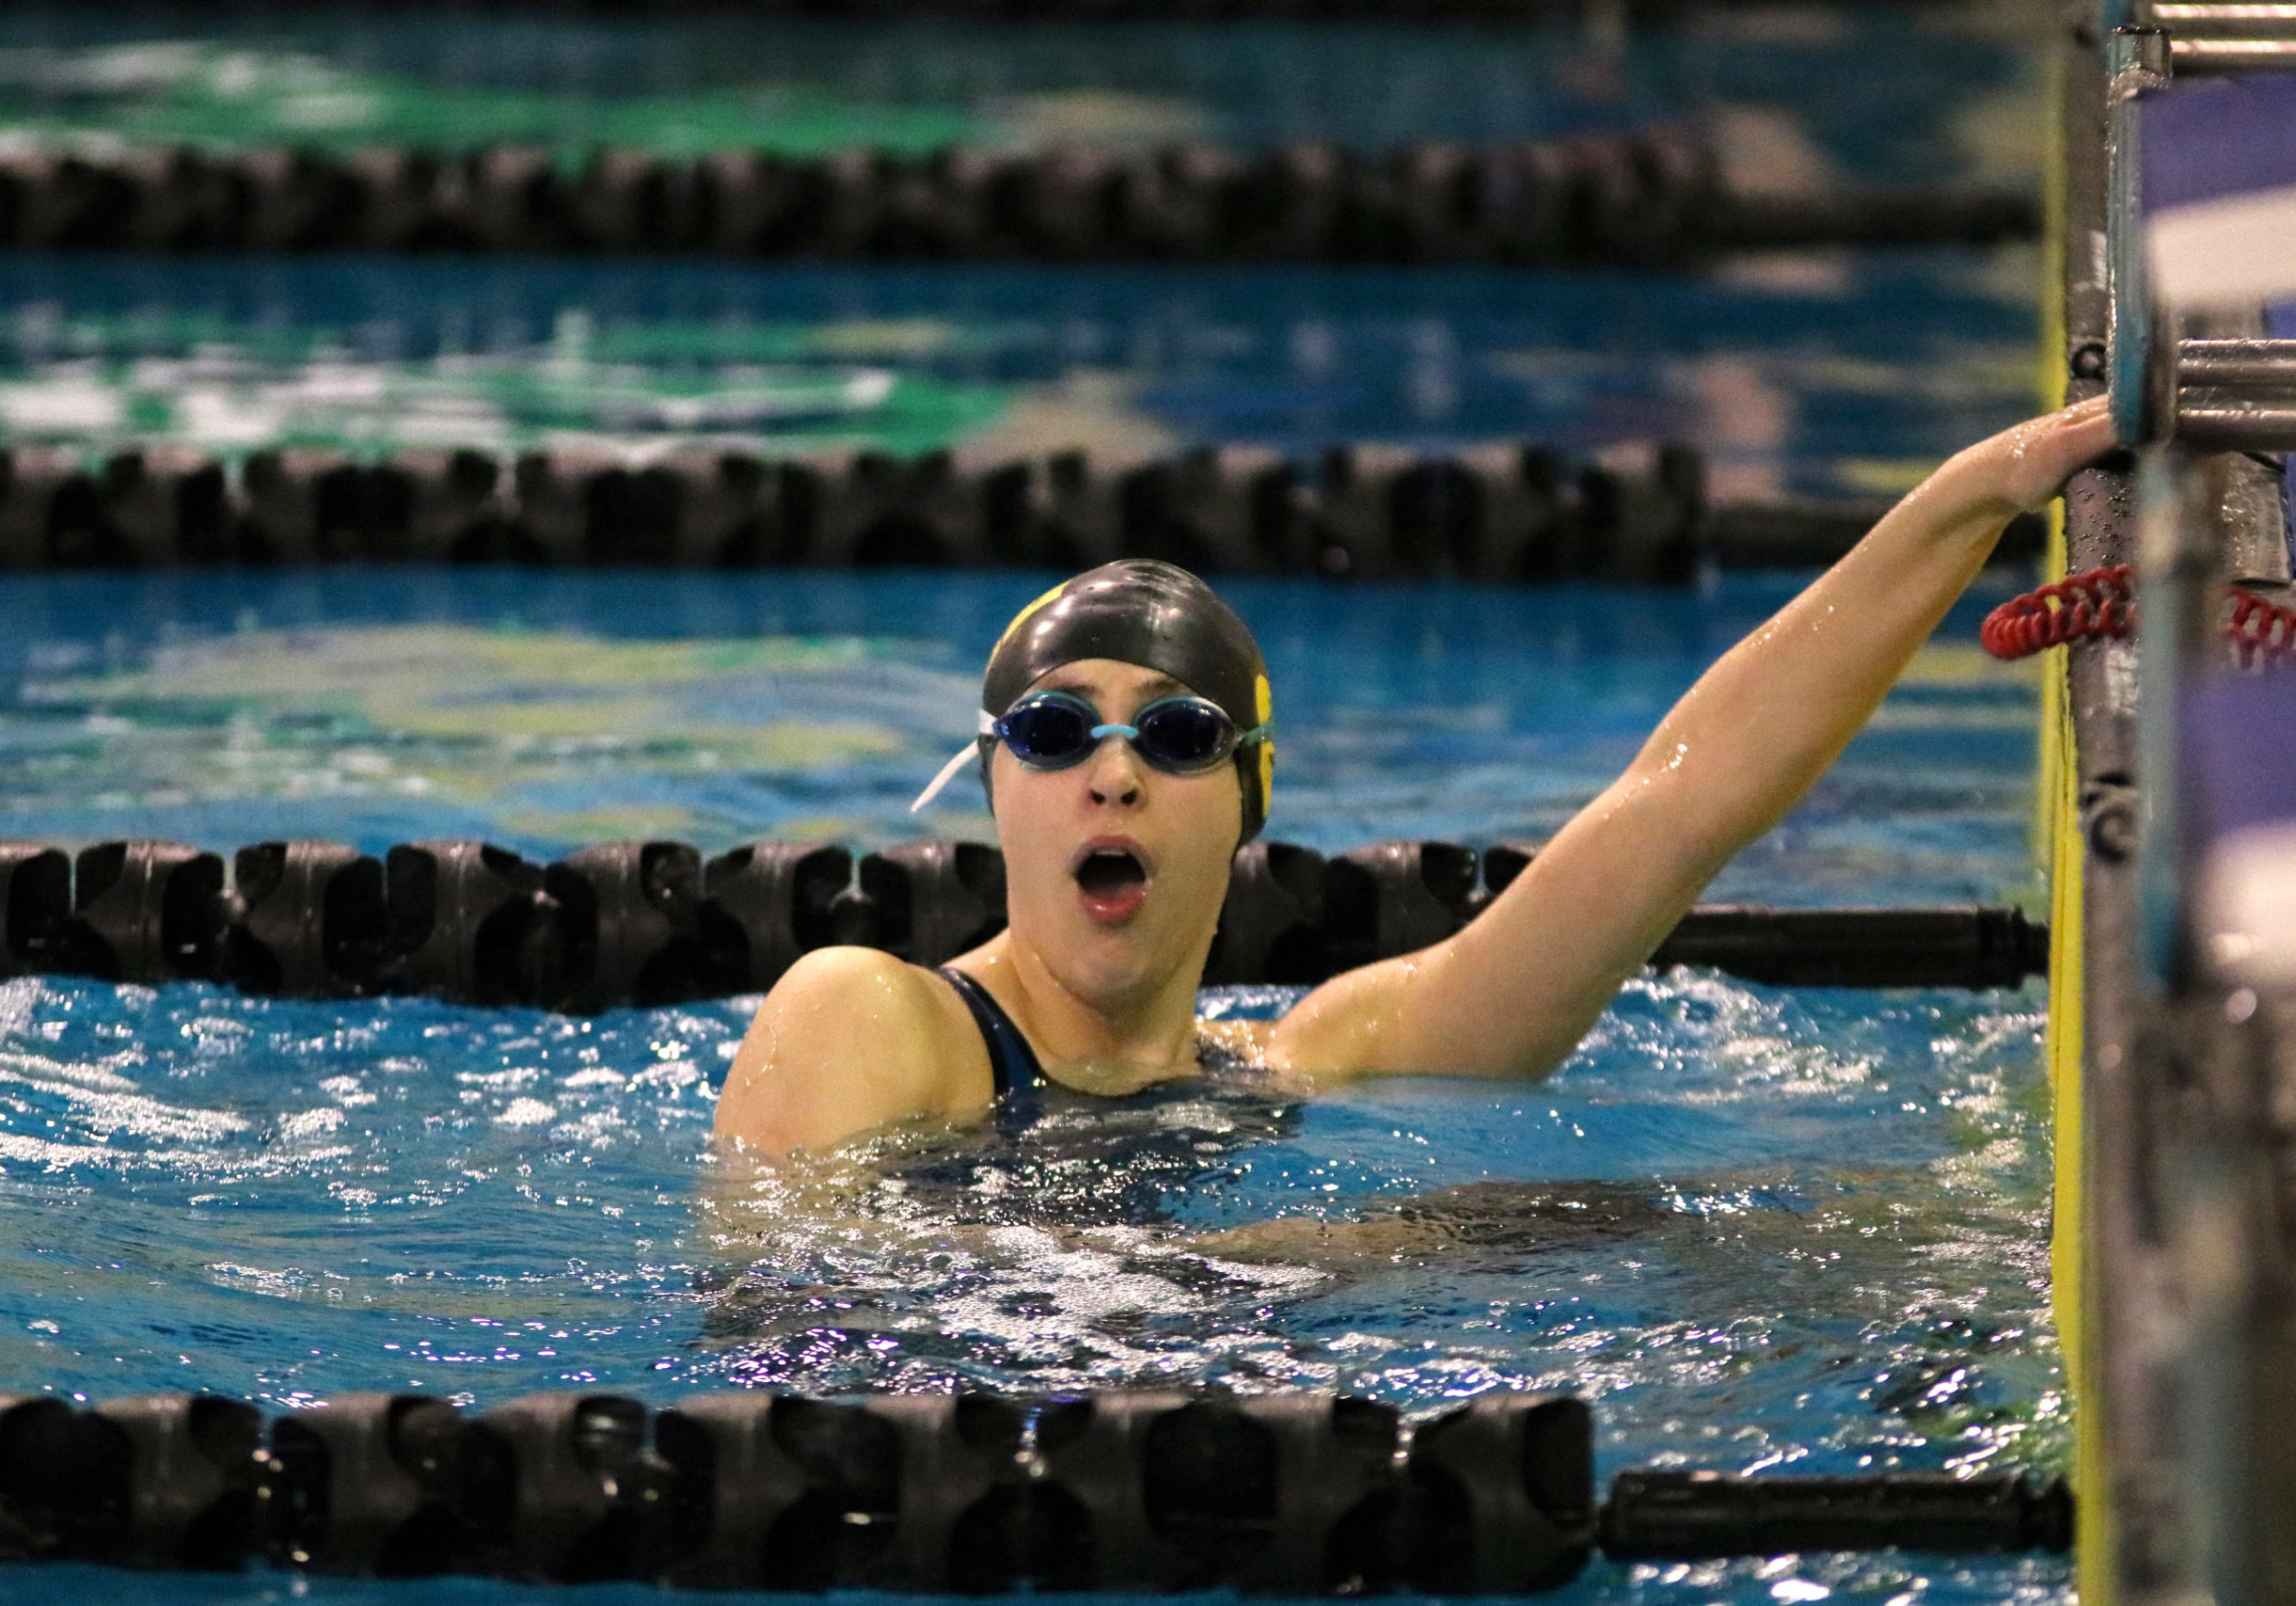 In this image: Isabel Sarty right after winning the 100m freestyle.